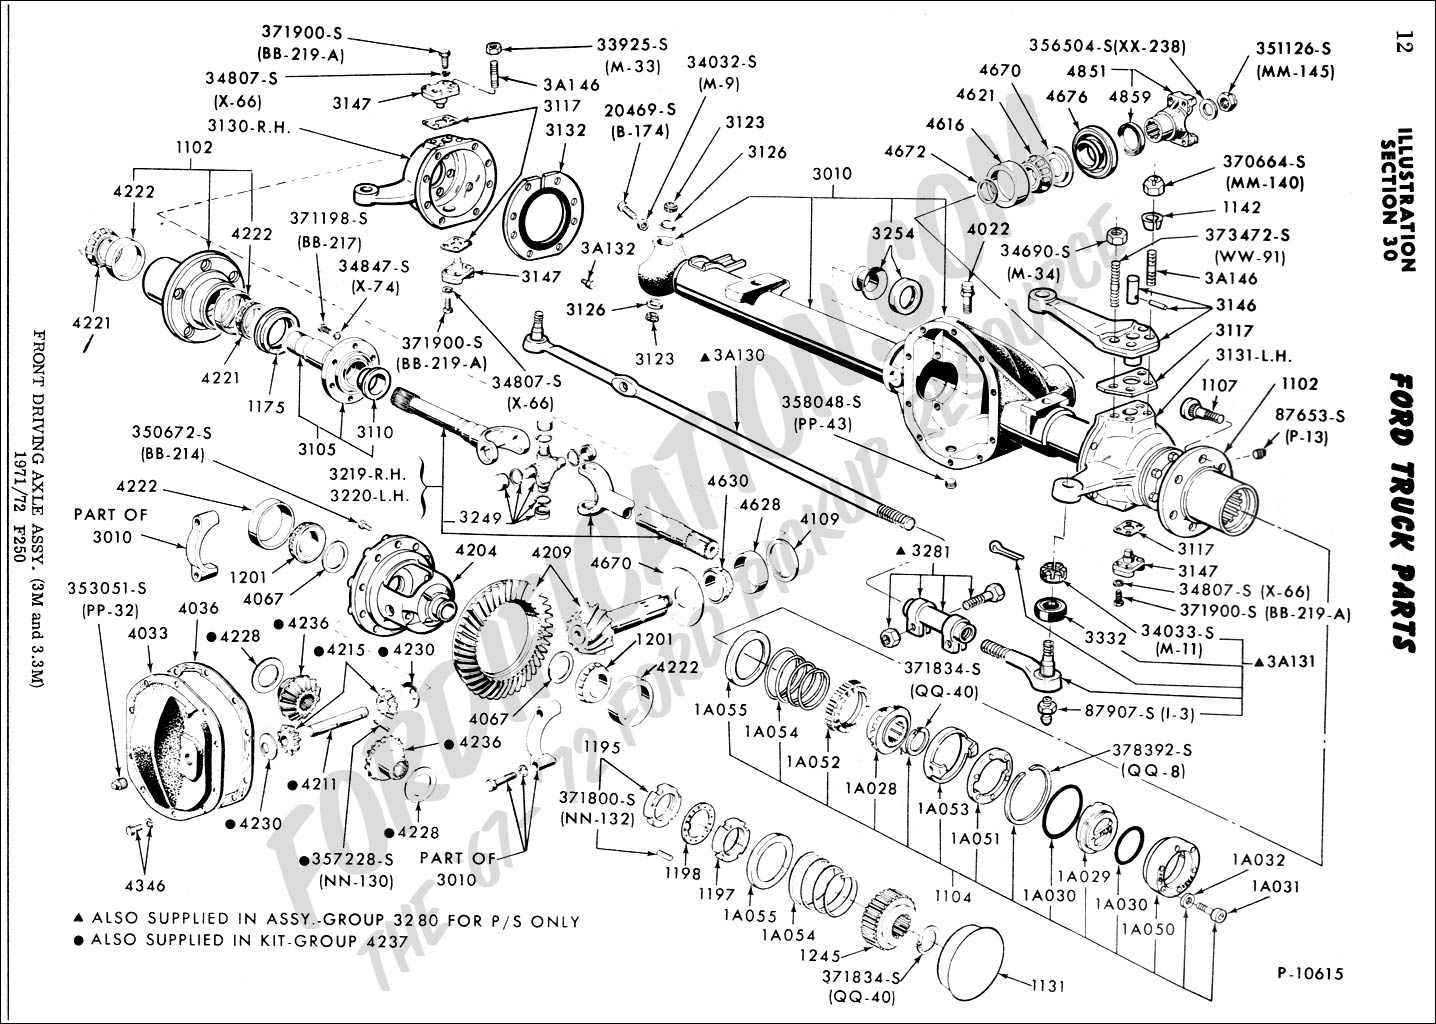 1995 Ford F350 Fuse Diagram Change Your Idea With Wiring 1996 F 250 Diesel 350 Library Rh 24 Akszer Eu Box Layout